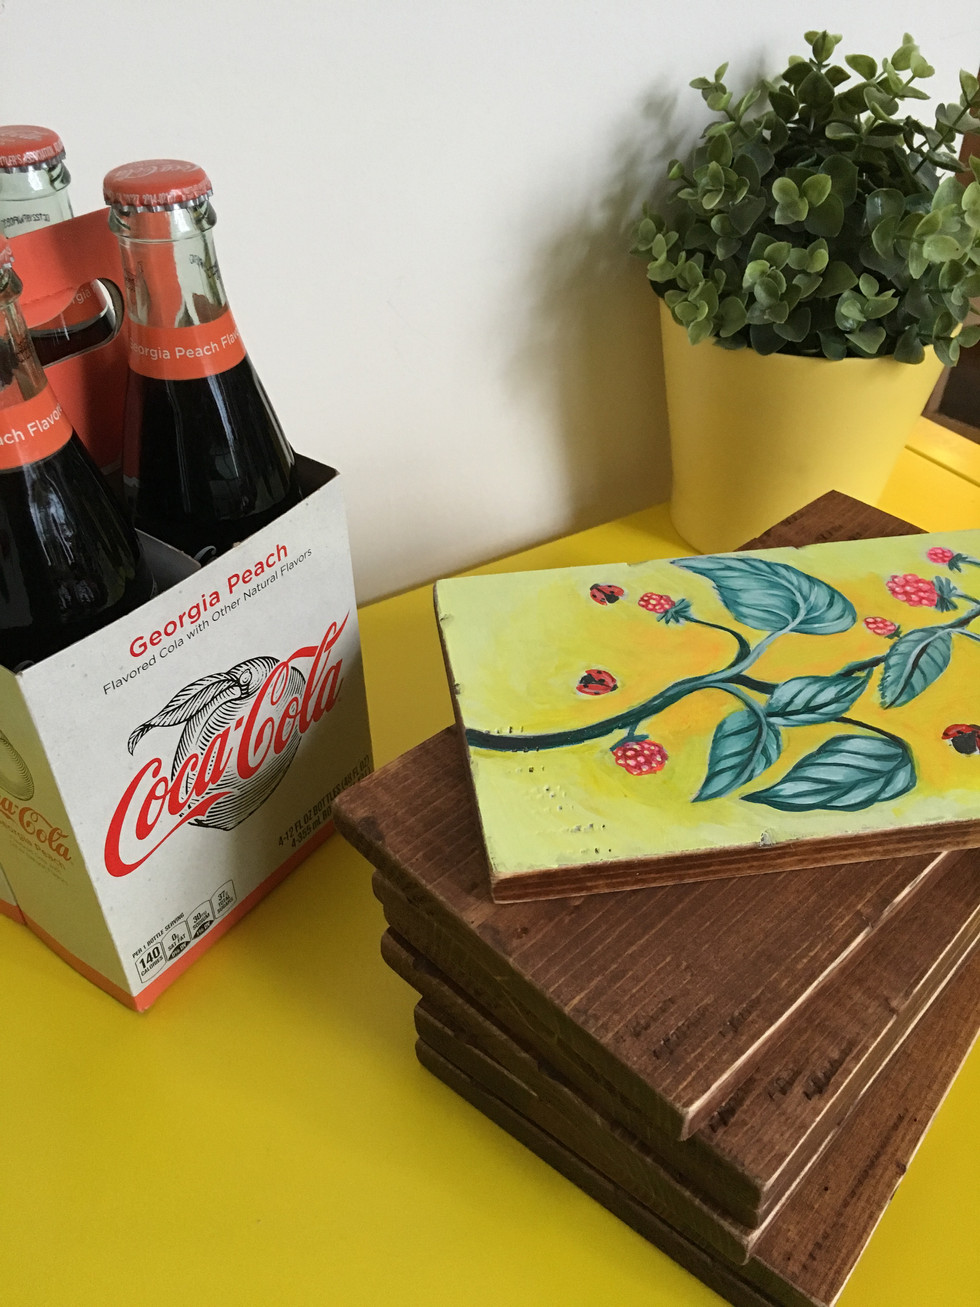 peach coke with yellow and paintings